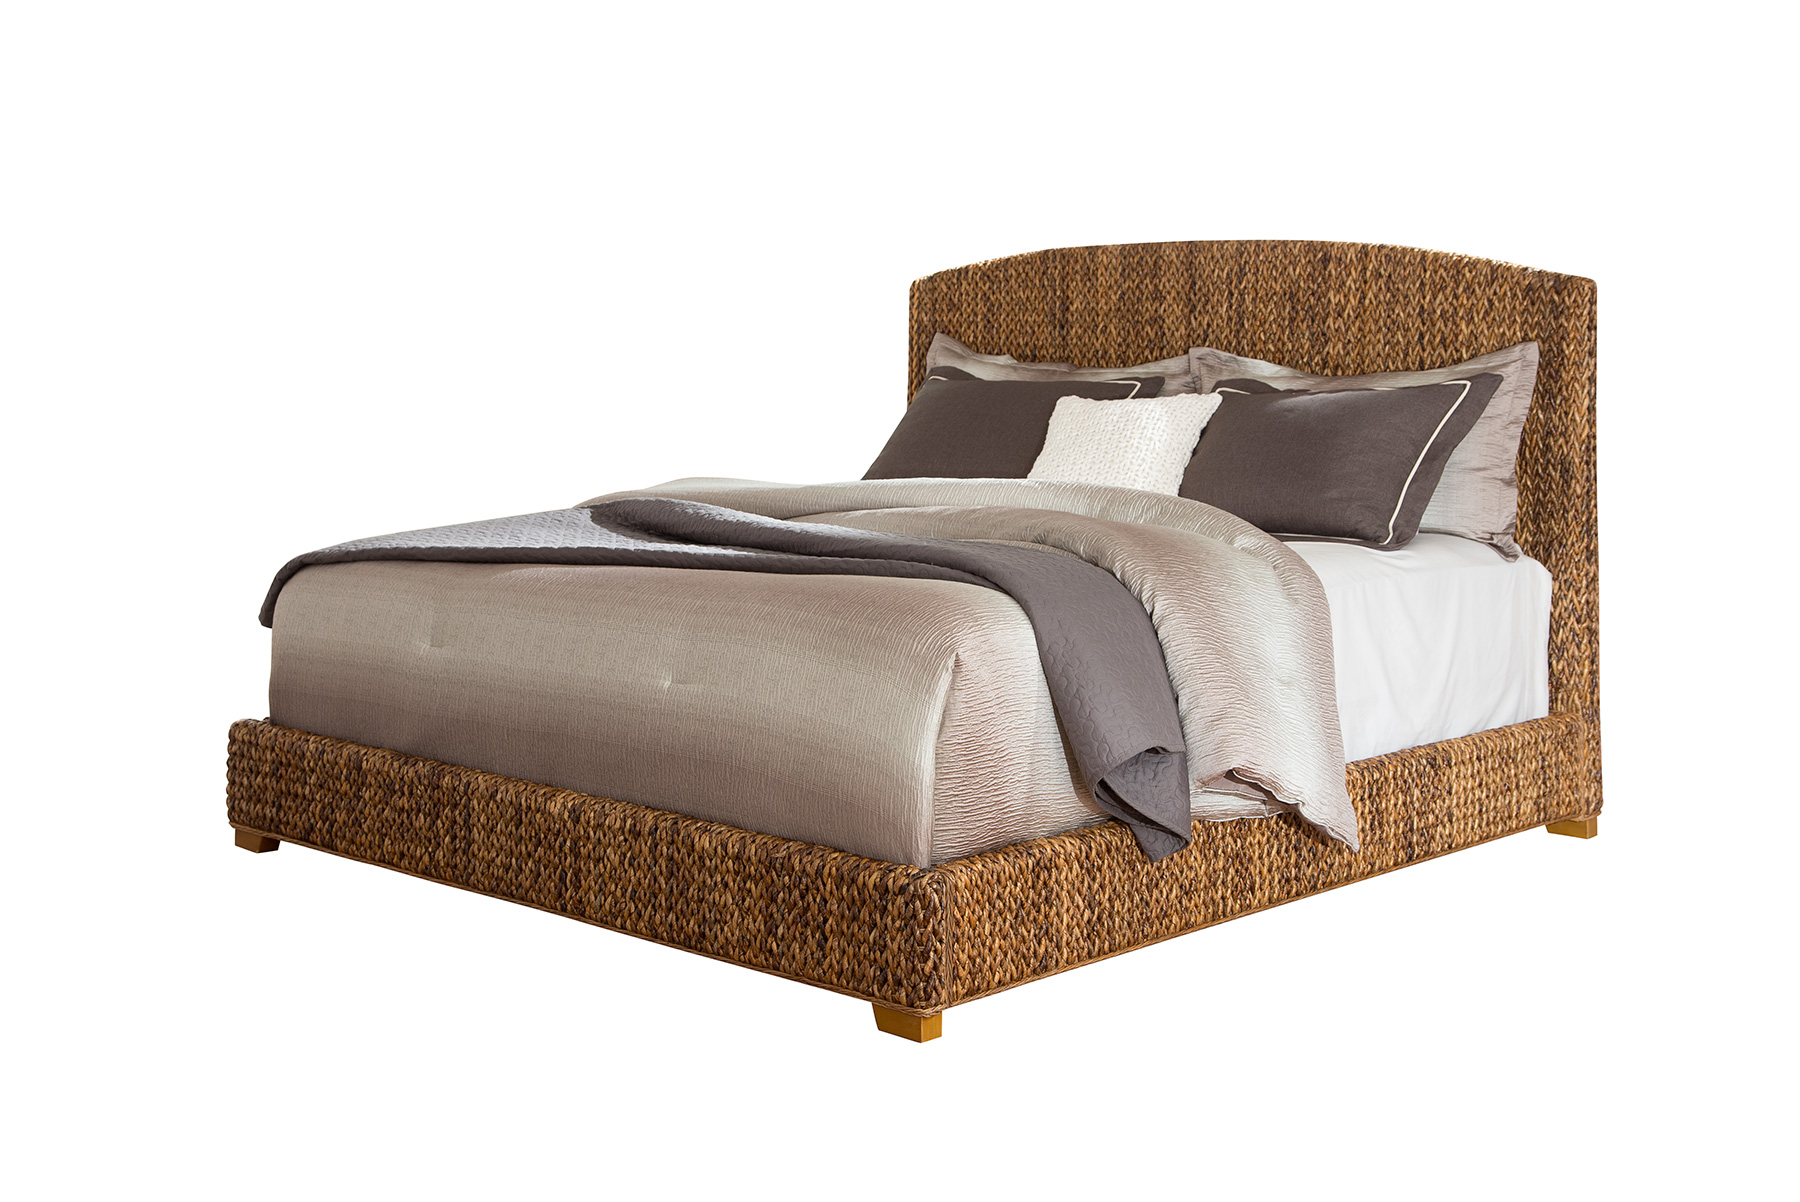 Laughton Eastern King Bed by Coaster at Carolina Direct